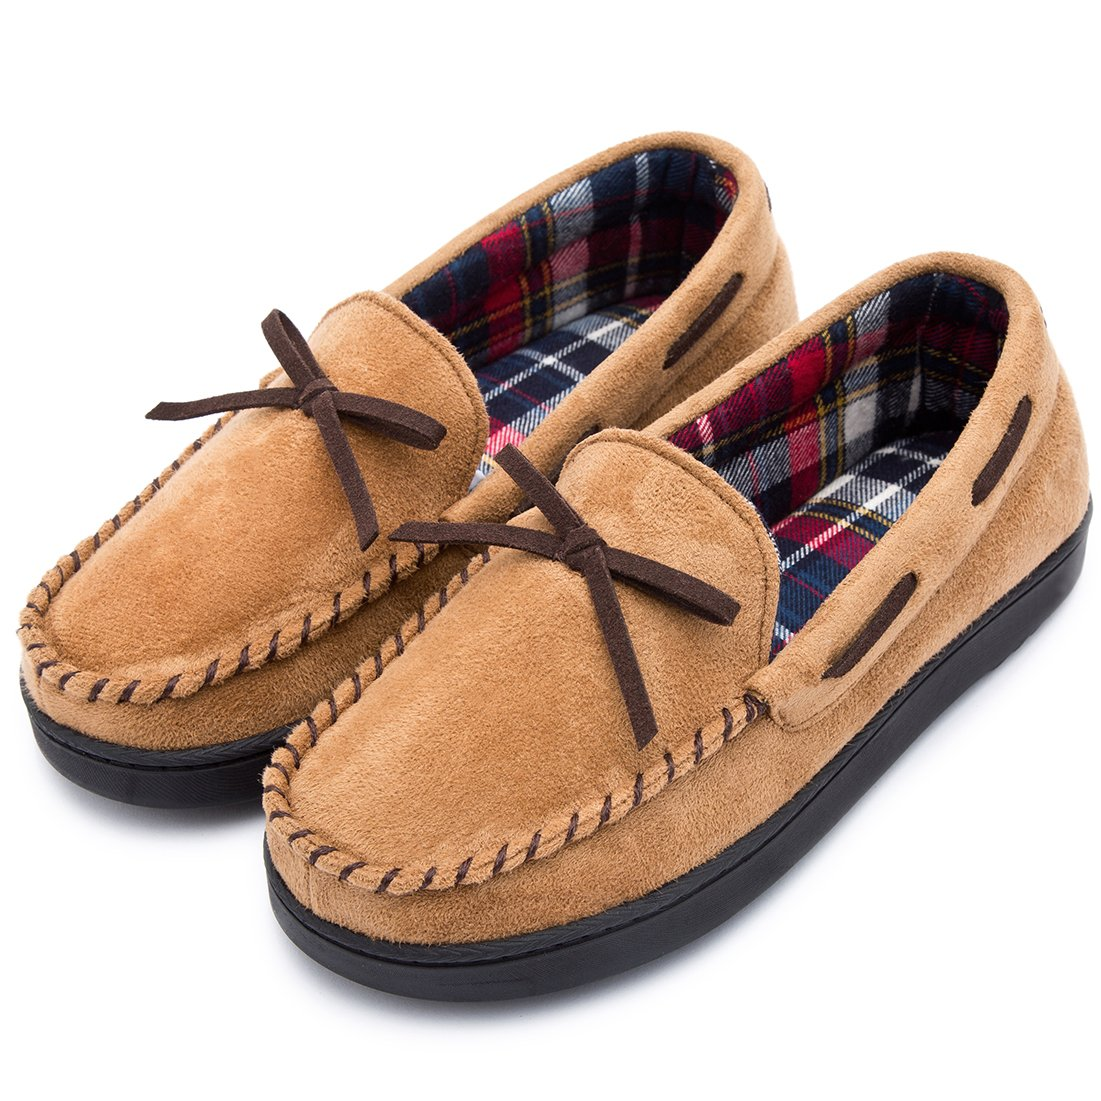 RockDove Women's Memory Foam Moccasin Slippers Plaid Lining (9 B(M) US, Tan)